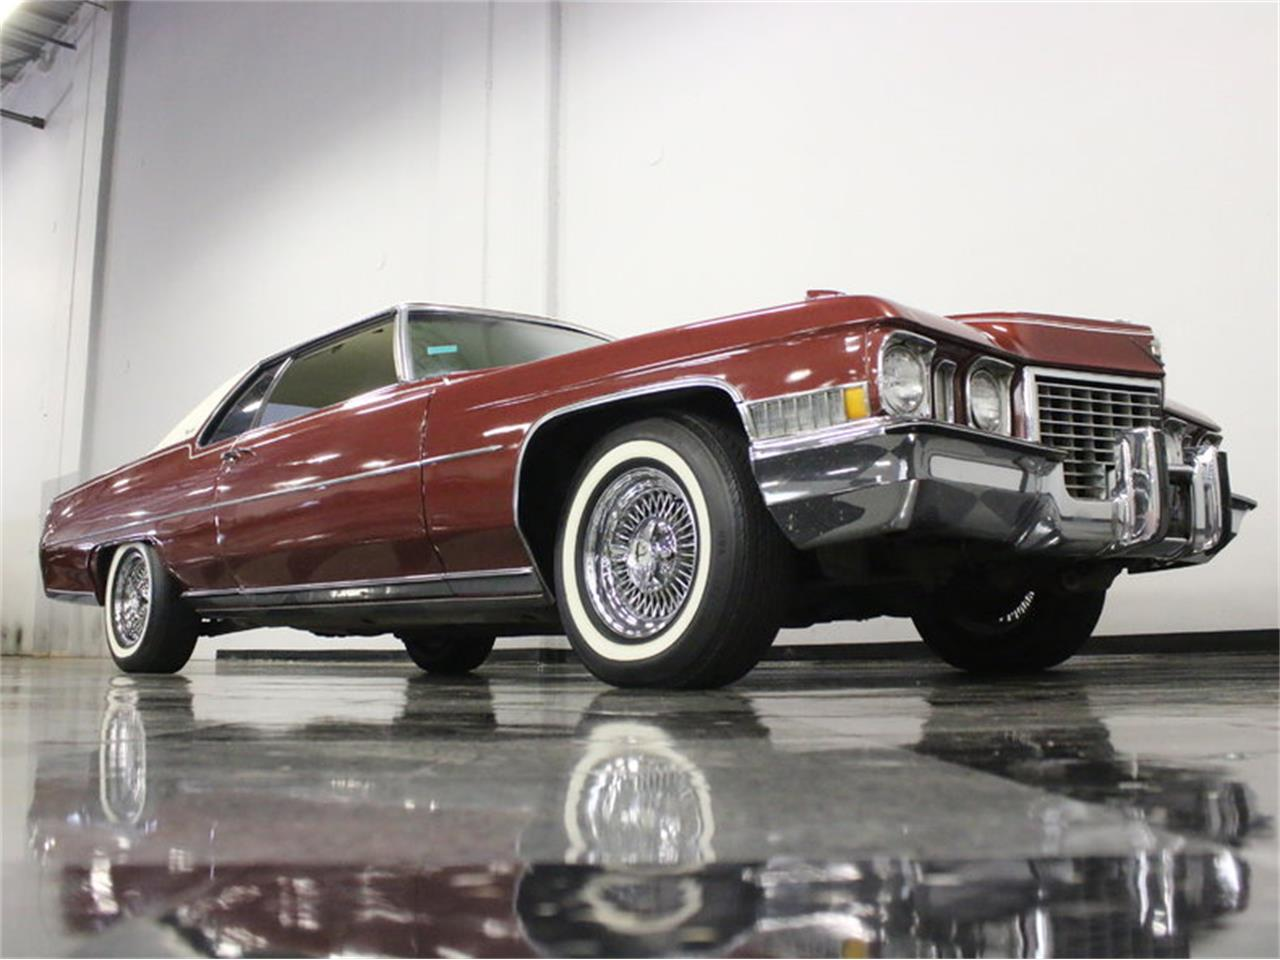 Large Picture of Classic '72 Cadillac Coupe DeVille located in Texas - $9,995.00 Offered by Streetside Classics - Dallas / Fort Worth - L1A0